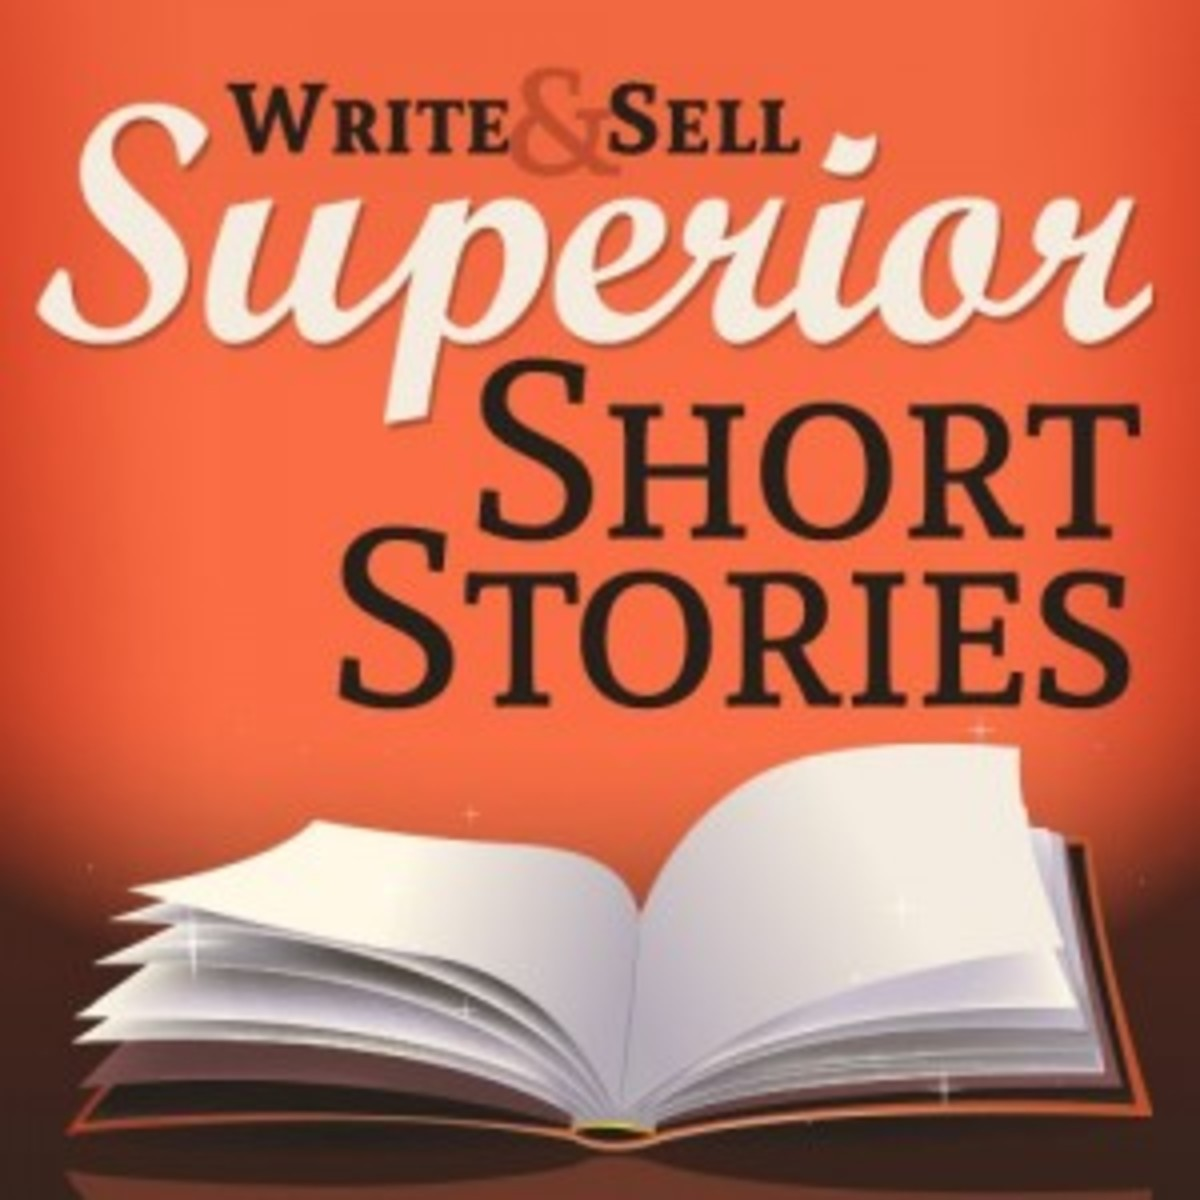 Write & Sell Superior Short Stories